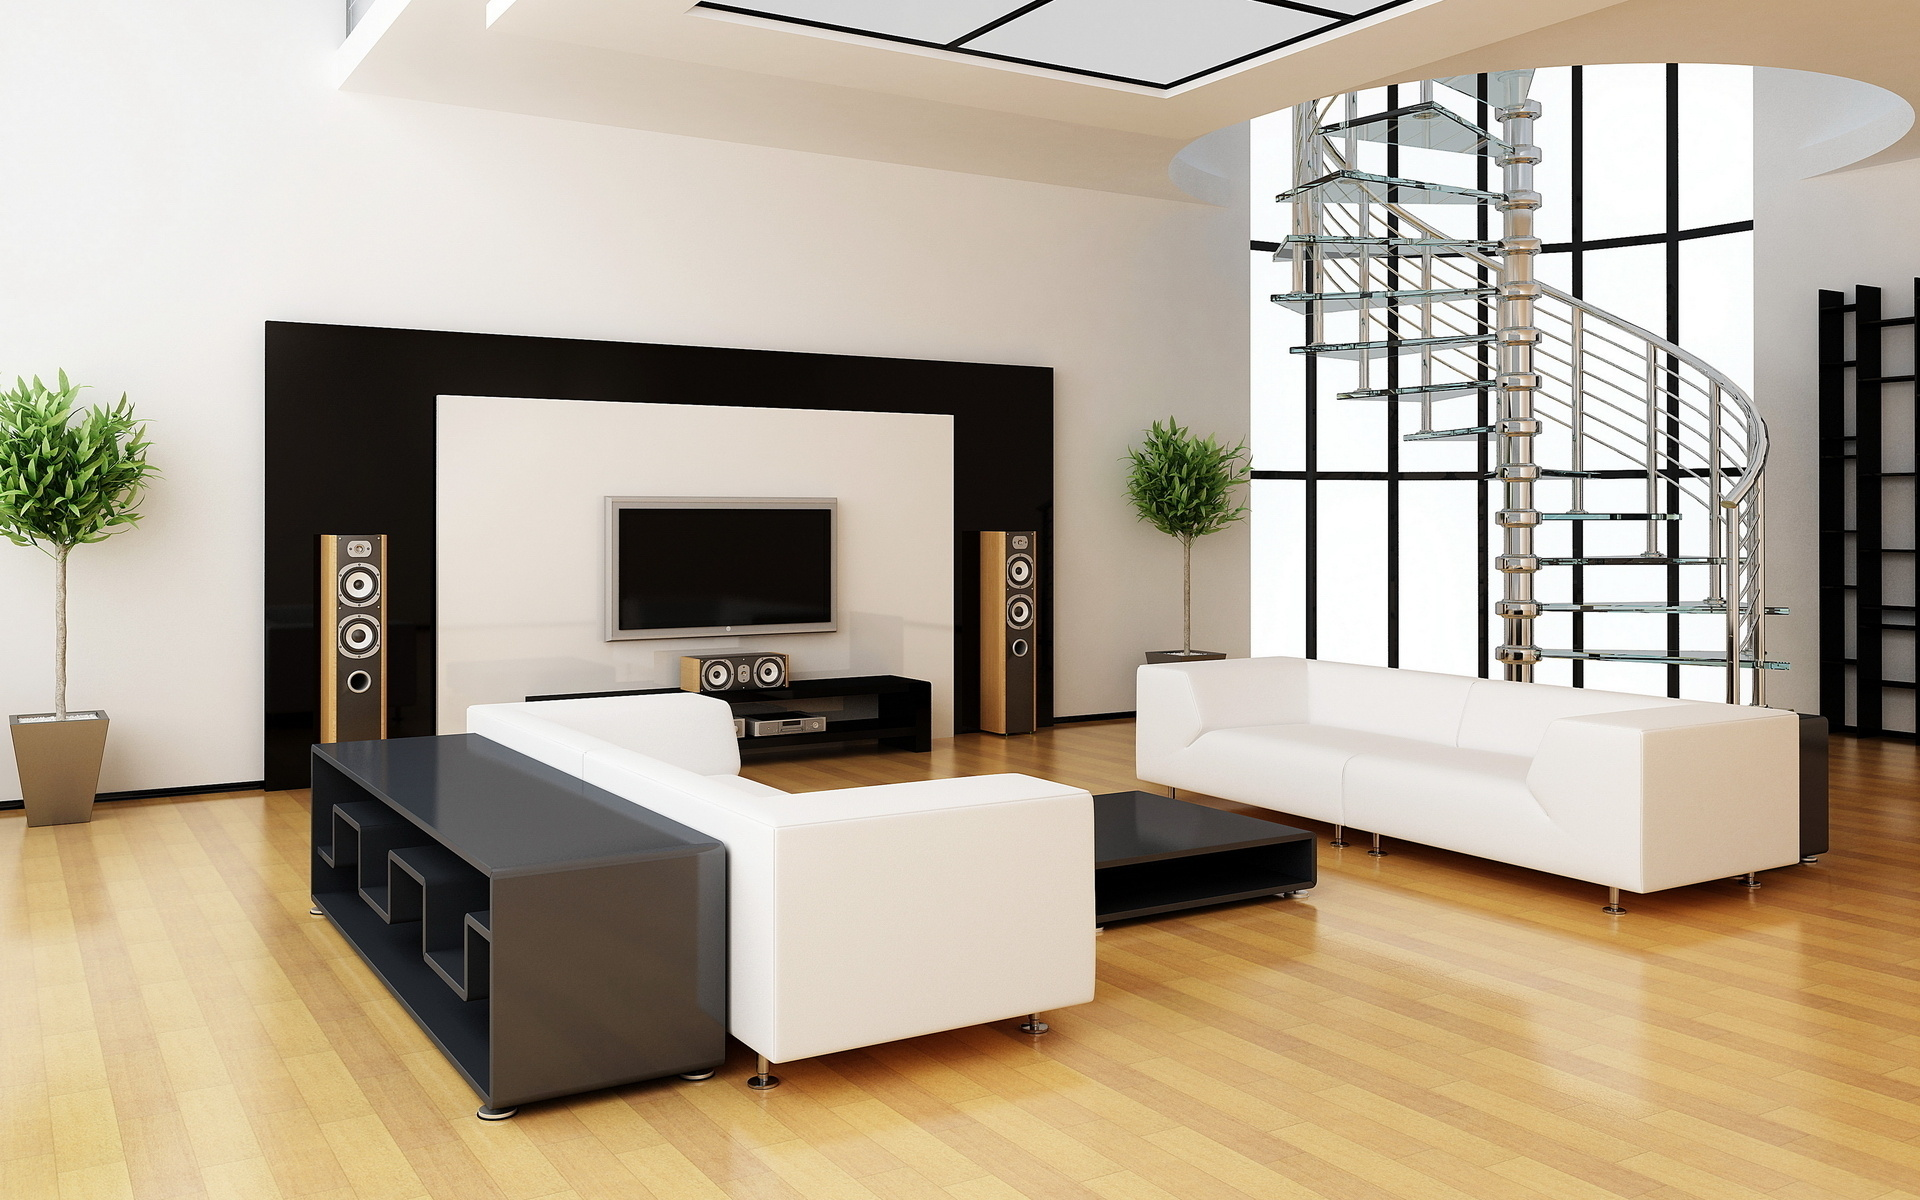 Interior-Designer-or-Interior-Decorator–What-is-the-Difference